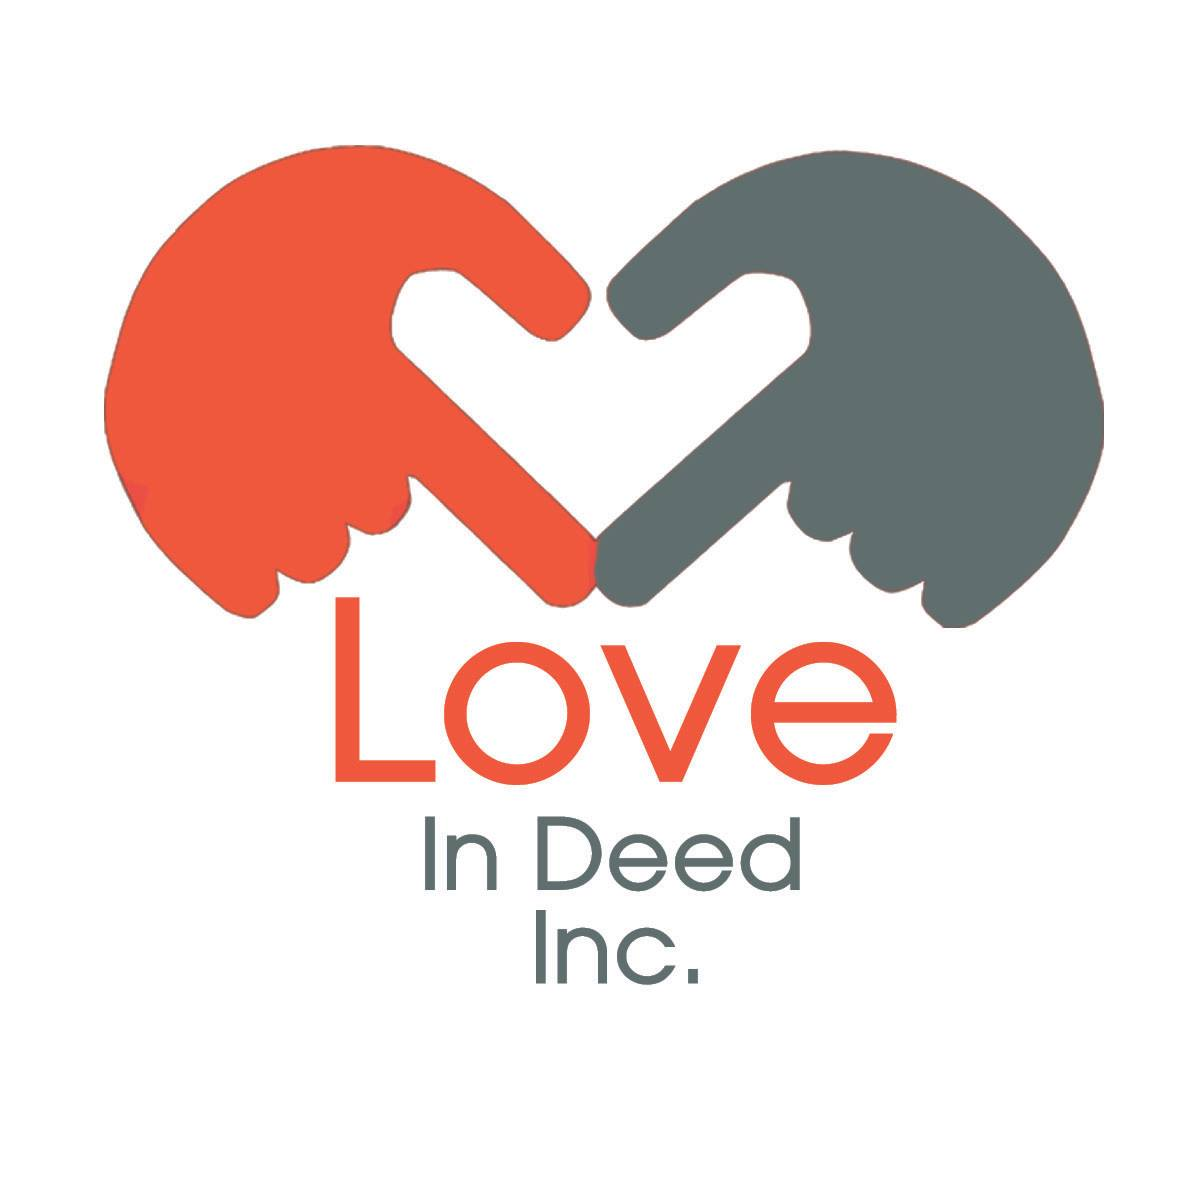 Love In Deed - Supports Michigan's foster children by providing clothing, shoes, and other items that are essential for daily living at no cost to the foster families.